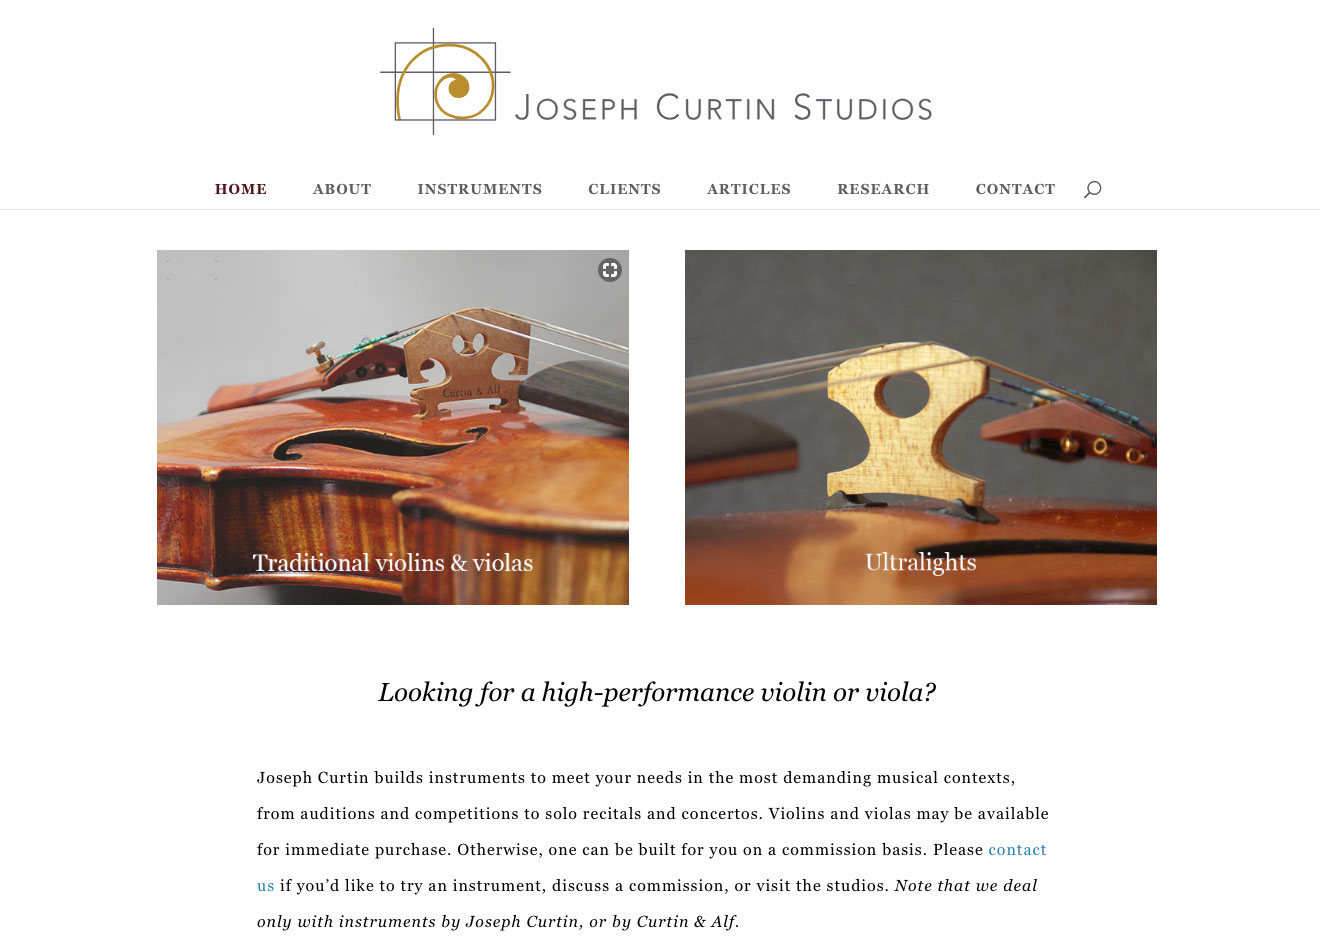 Screenshot of Joseph Curtin Studios home page